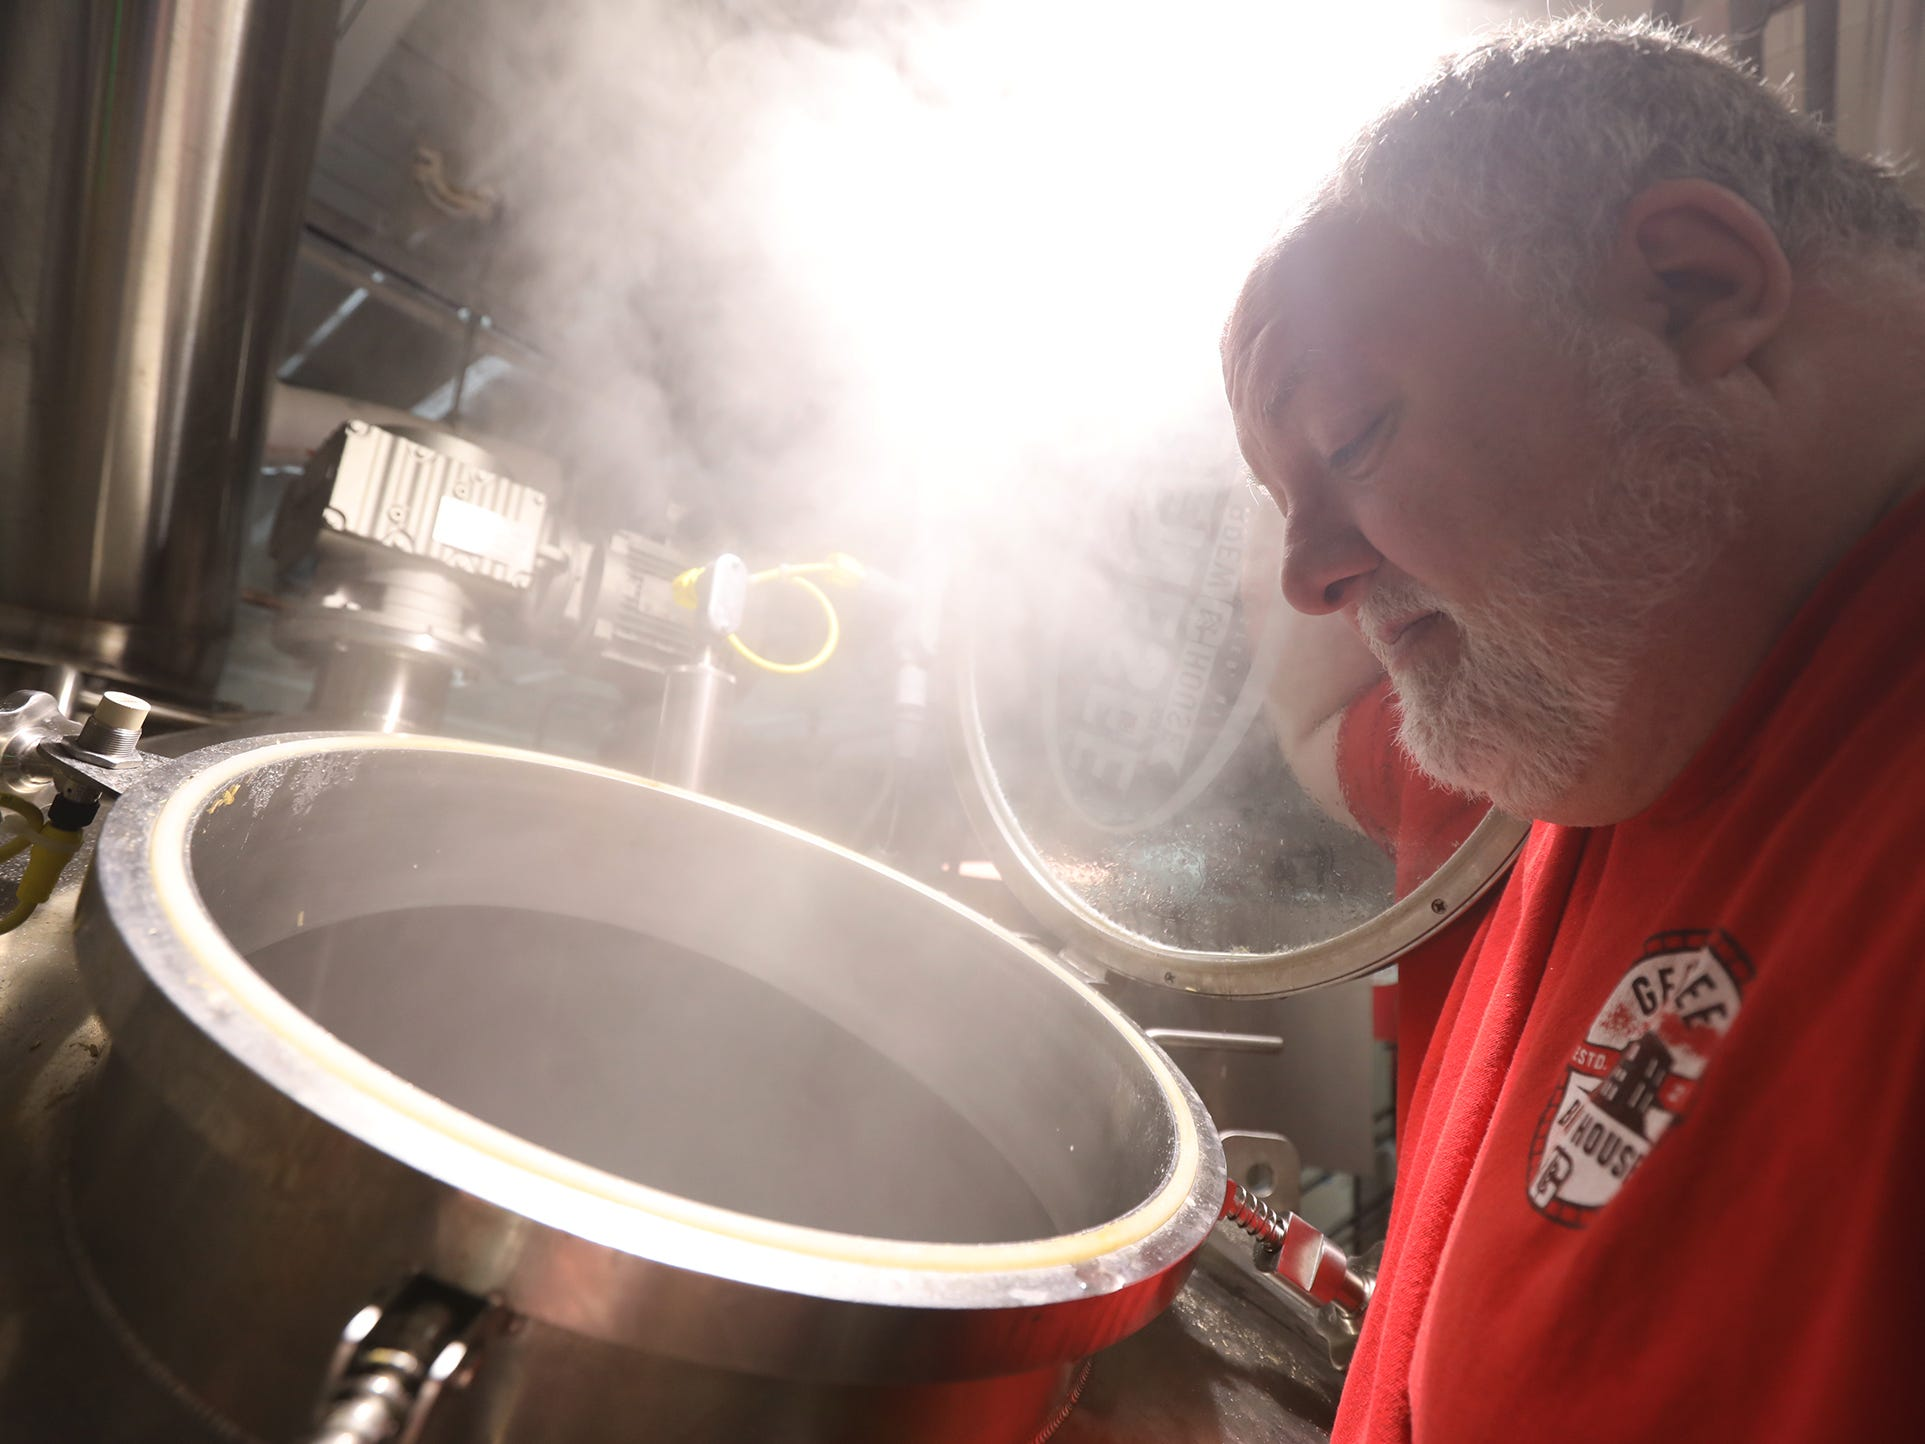 Dean Jones, brewmaster at the Genesee Brew House, checks the progress of the mash during a collaborative brew day with Other Half Brewing on Feb. 12.